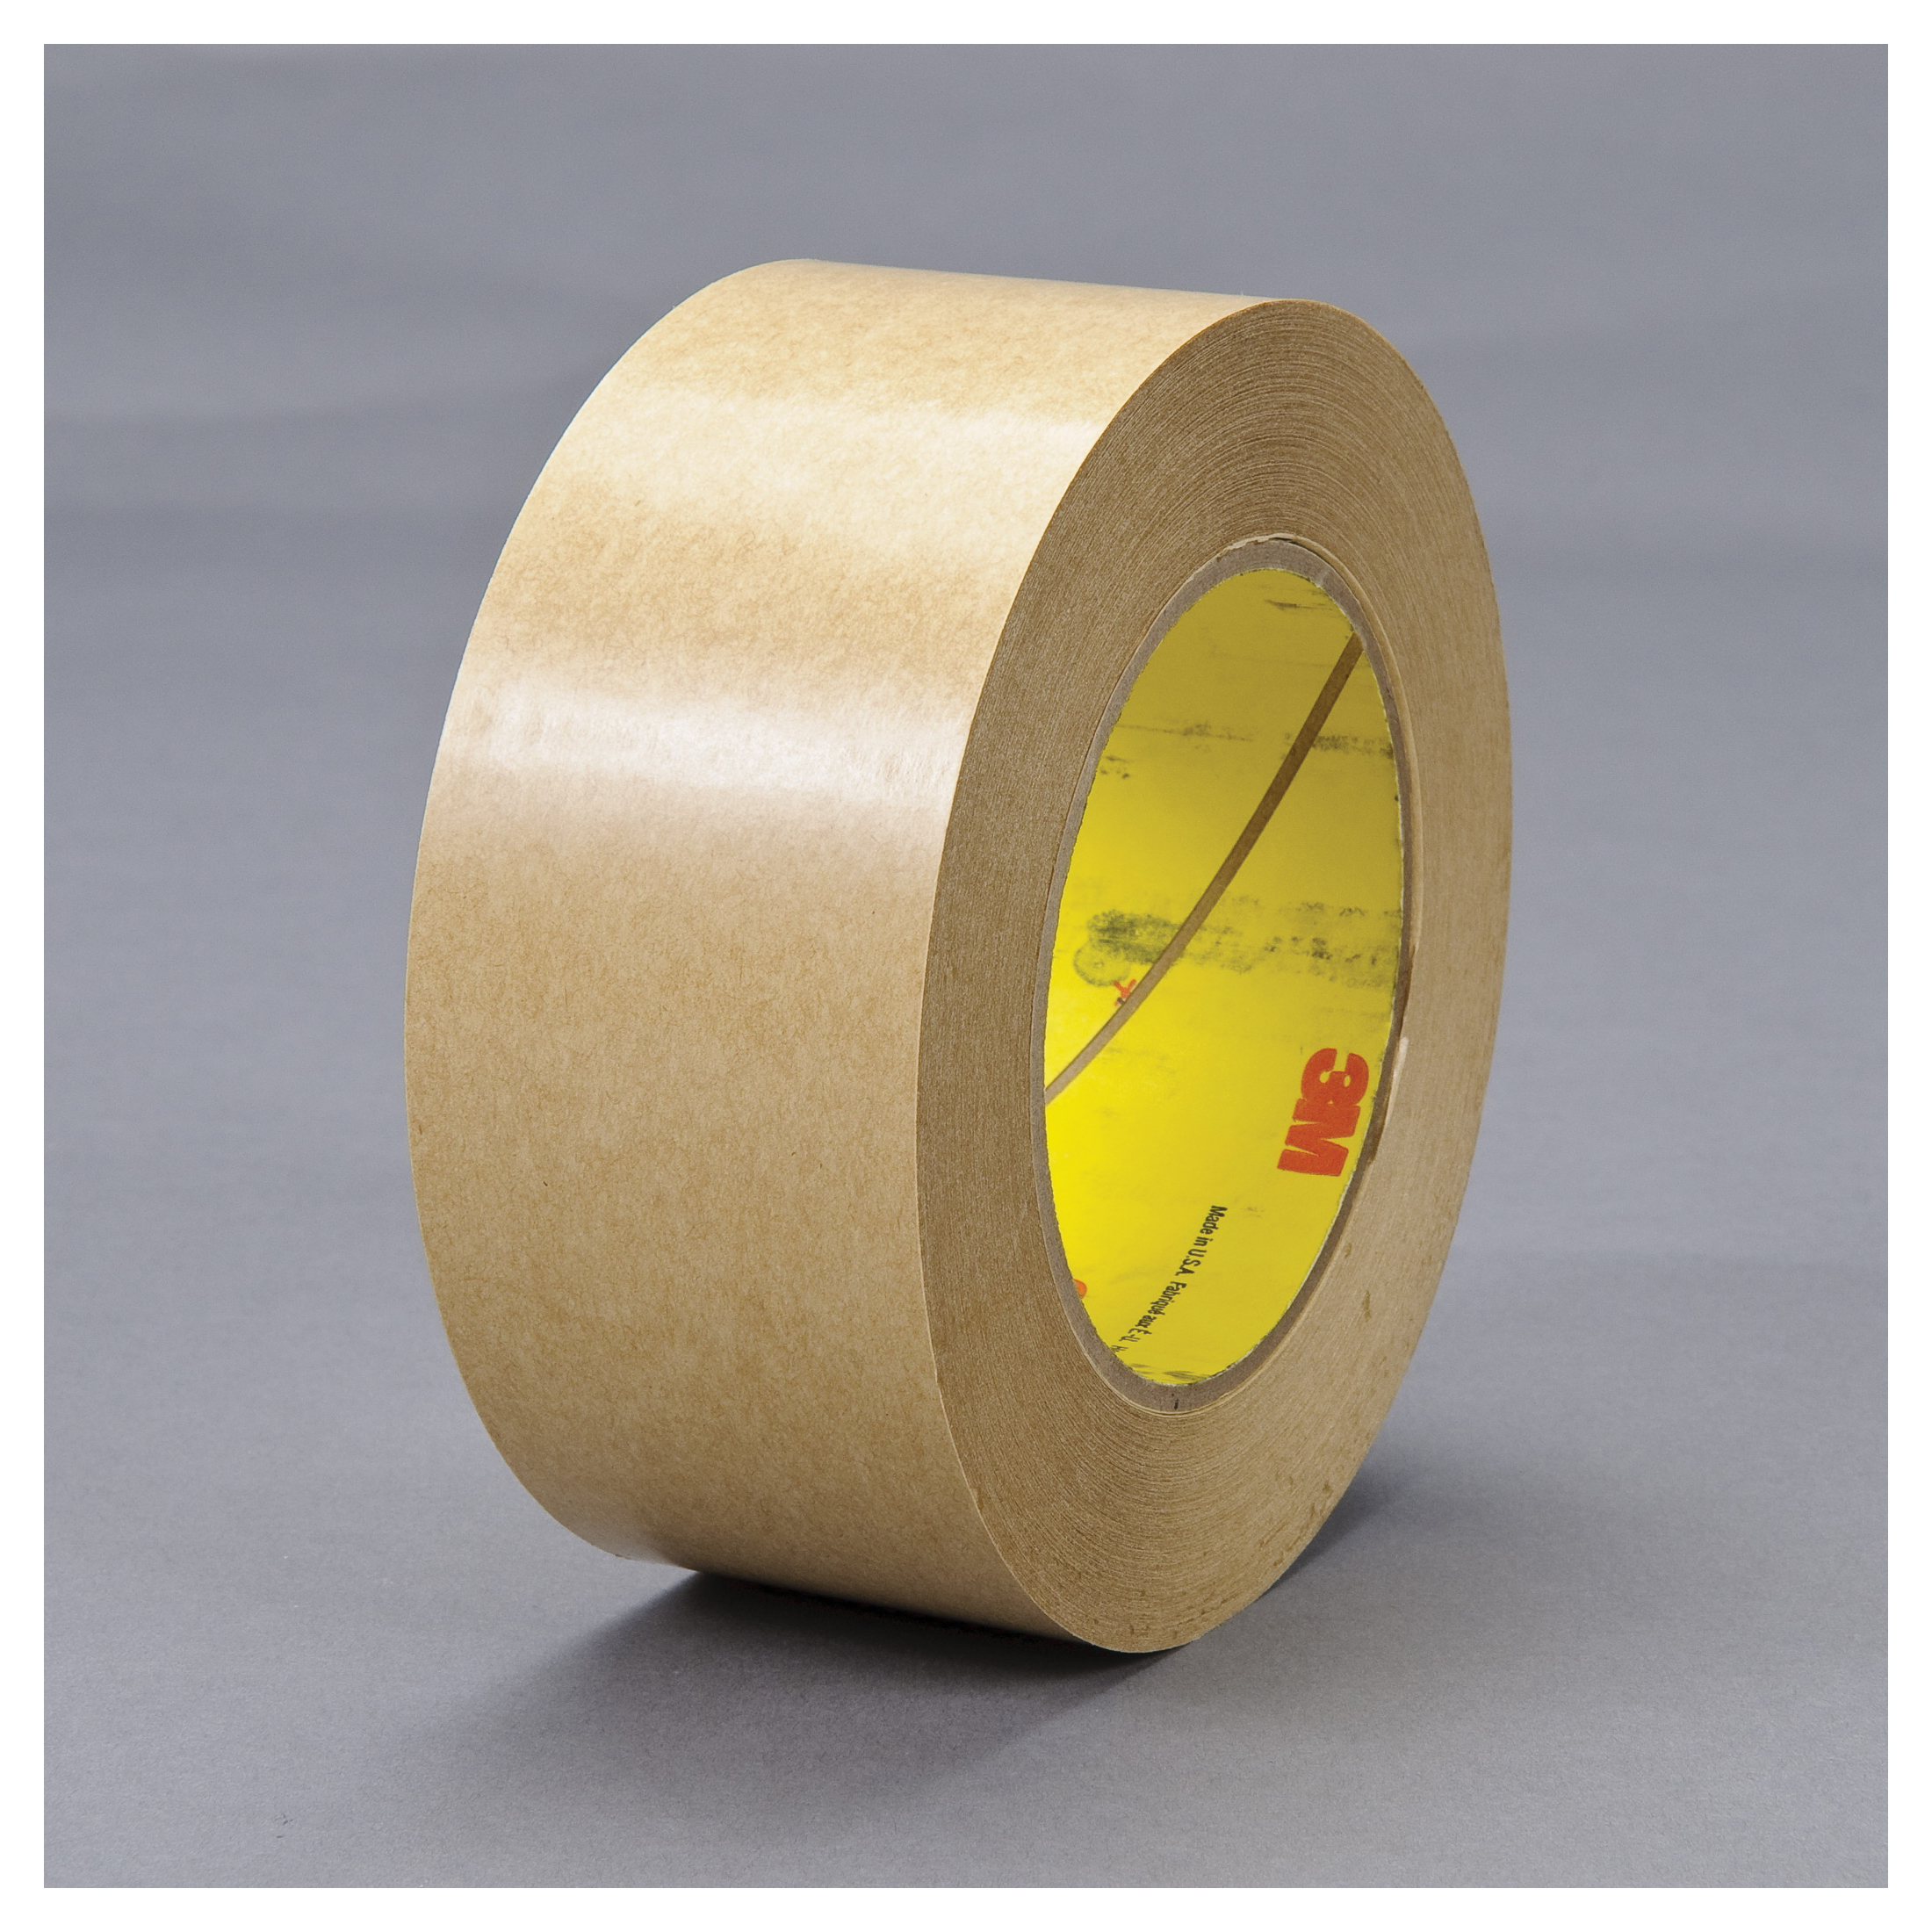 3M™ 021200-03352 Fibered General Purpose Adhesive Transfer Tape, 60 yd L x 8 in W, 2 mil THK, 2 mil 400 Acrylic Adhesive, Clear